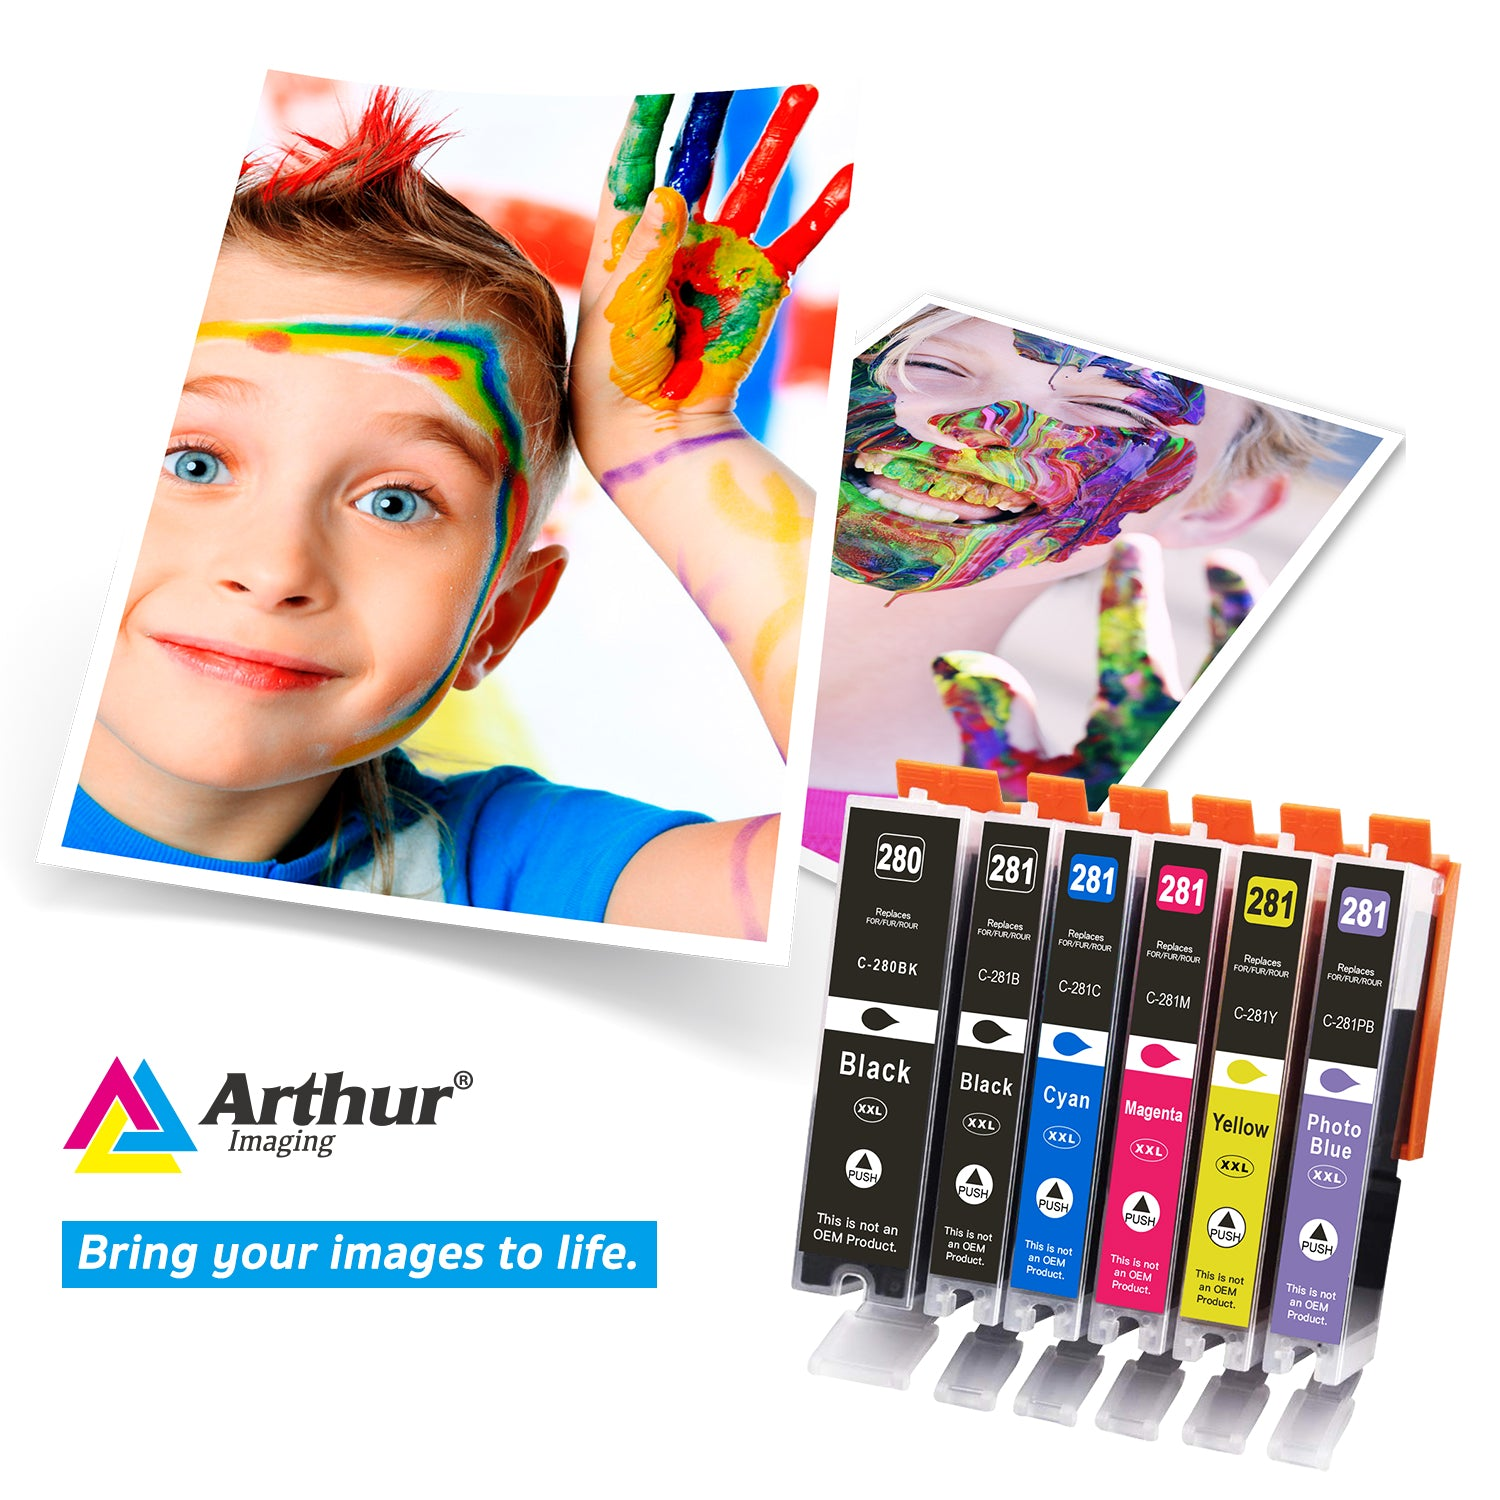 Arthur Imaging Compatible Ink Cartridge Replacement for PGI280XXL CLI281XXL (1 Large Black, 1 Small Black, 1 Cyan, 1 Yellow, 1 Magenta, 1 Photo blue, 6-Pack)